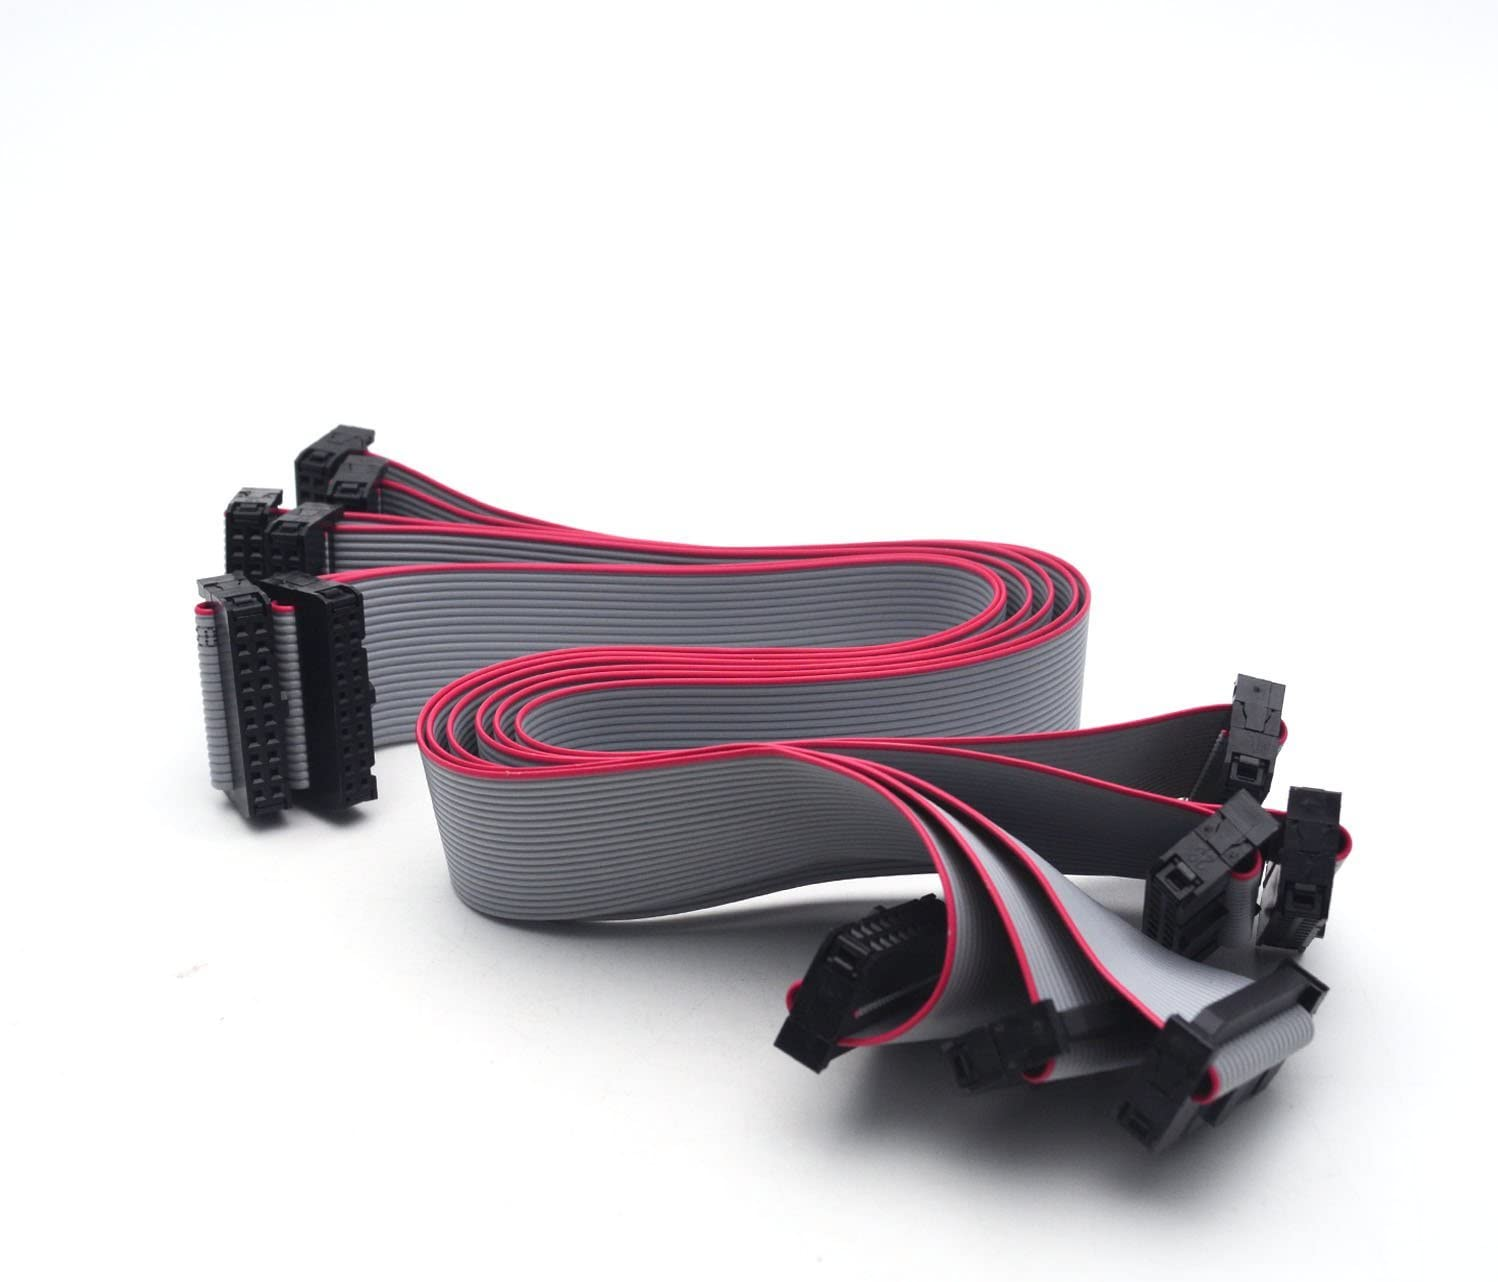 uxcell IDC 16 Pins Connector Flat Ribbon Cable Female Connector Length 20cm 1.27mm Pitch,2pcs